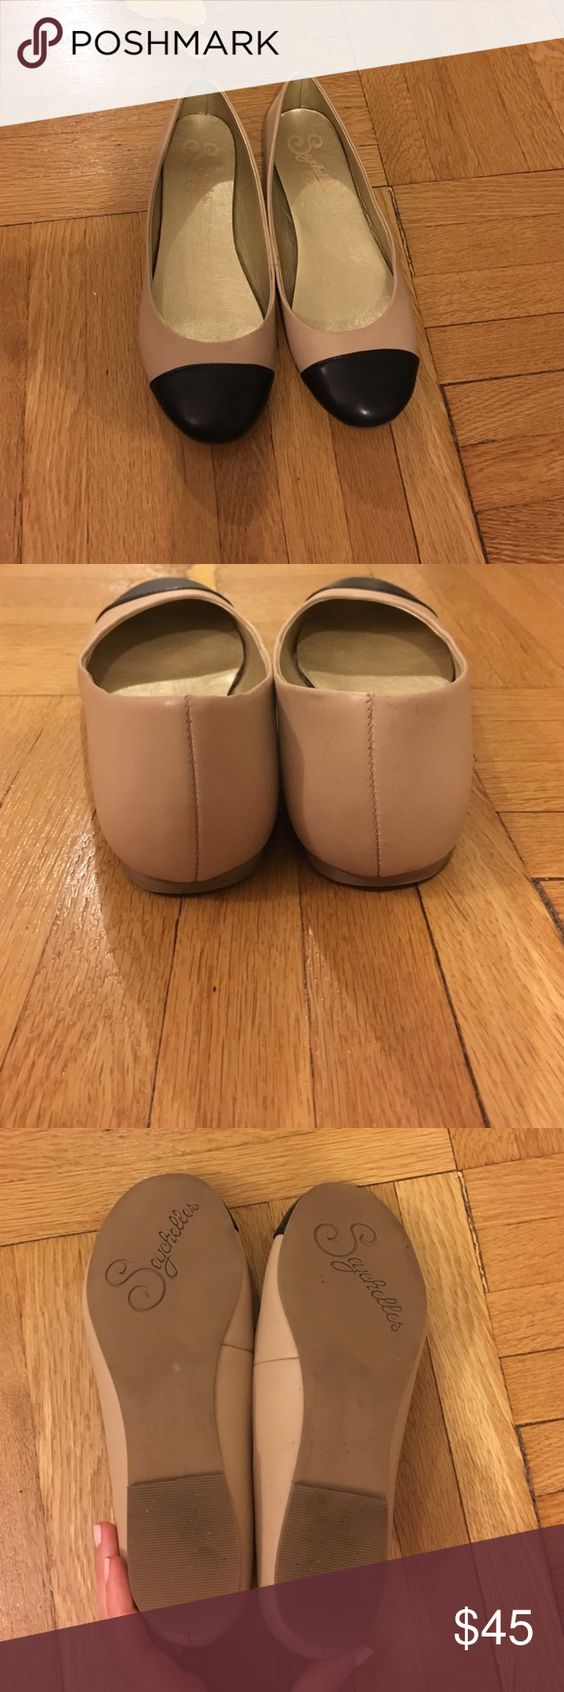 Seychelles flats Beautiful Seychelles flats with black toe accent. Worn 2-3 times, in great condition! Seychelles Shoes Flats & Loafers